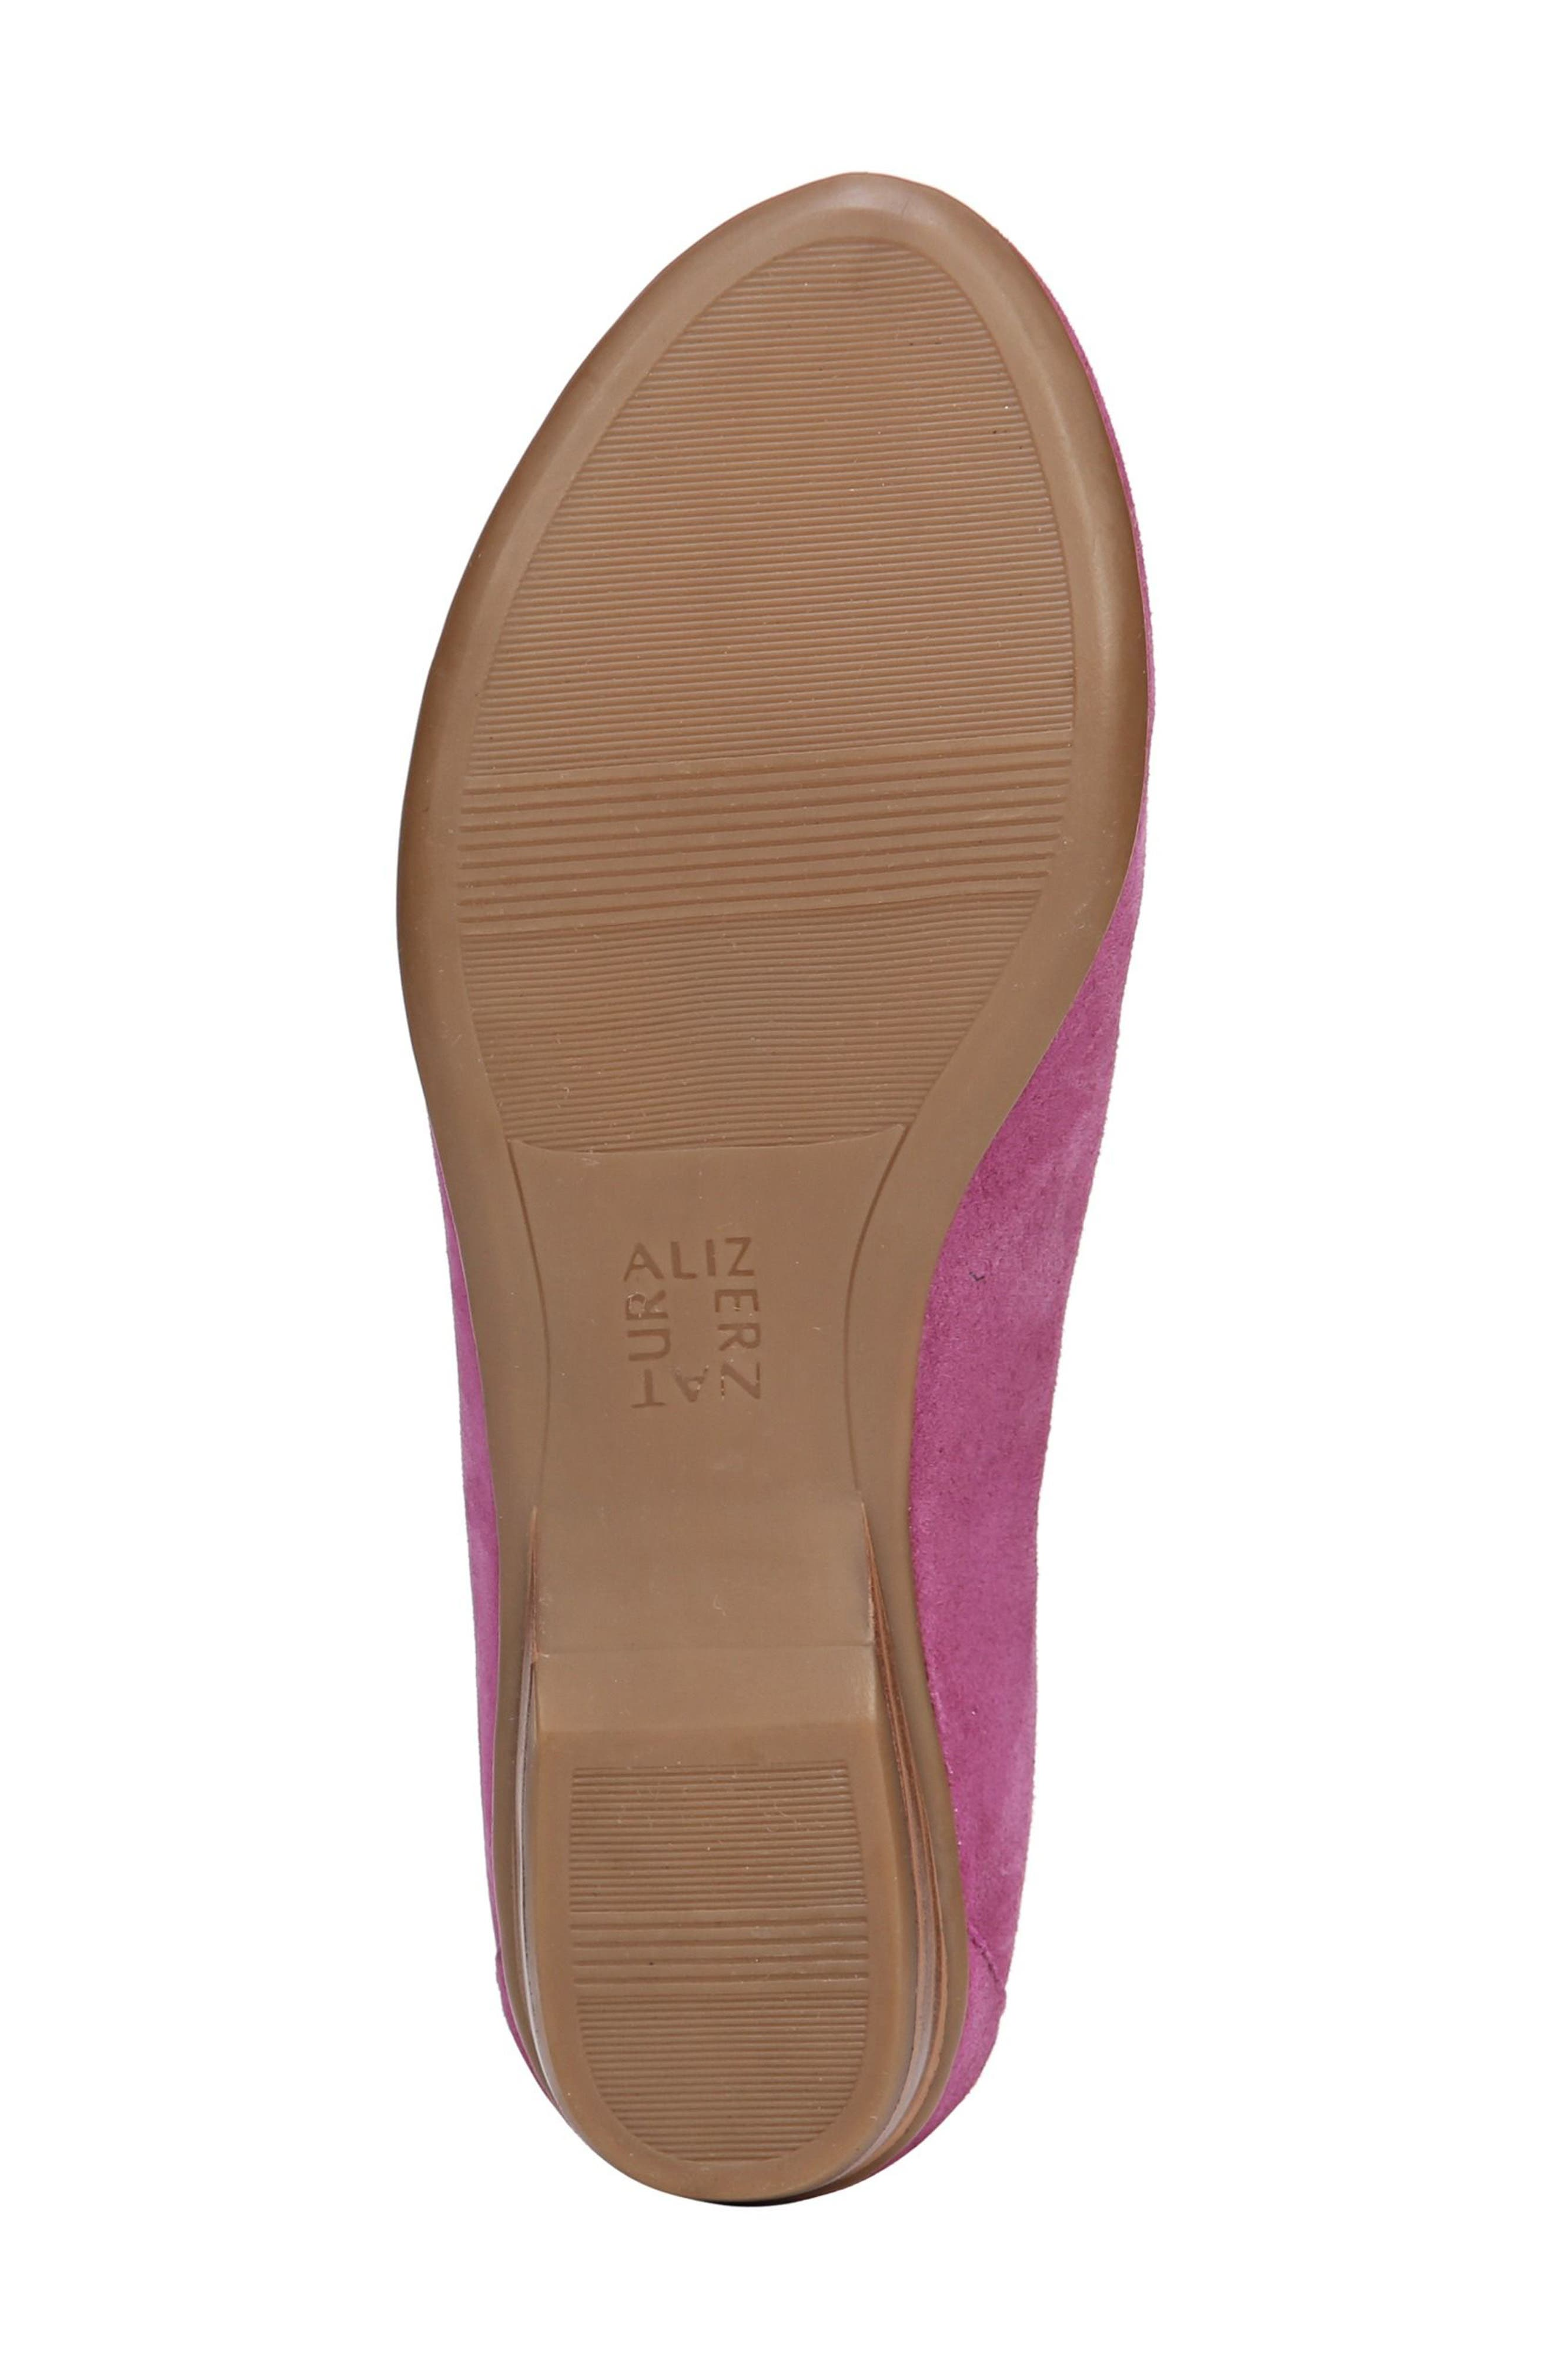 'Saban' Leather Loafer,                             Alternate thumbnail 4, color,                             Radiant Orchid Suede